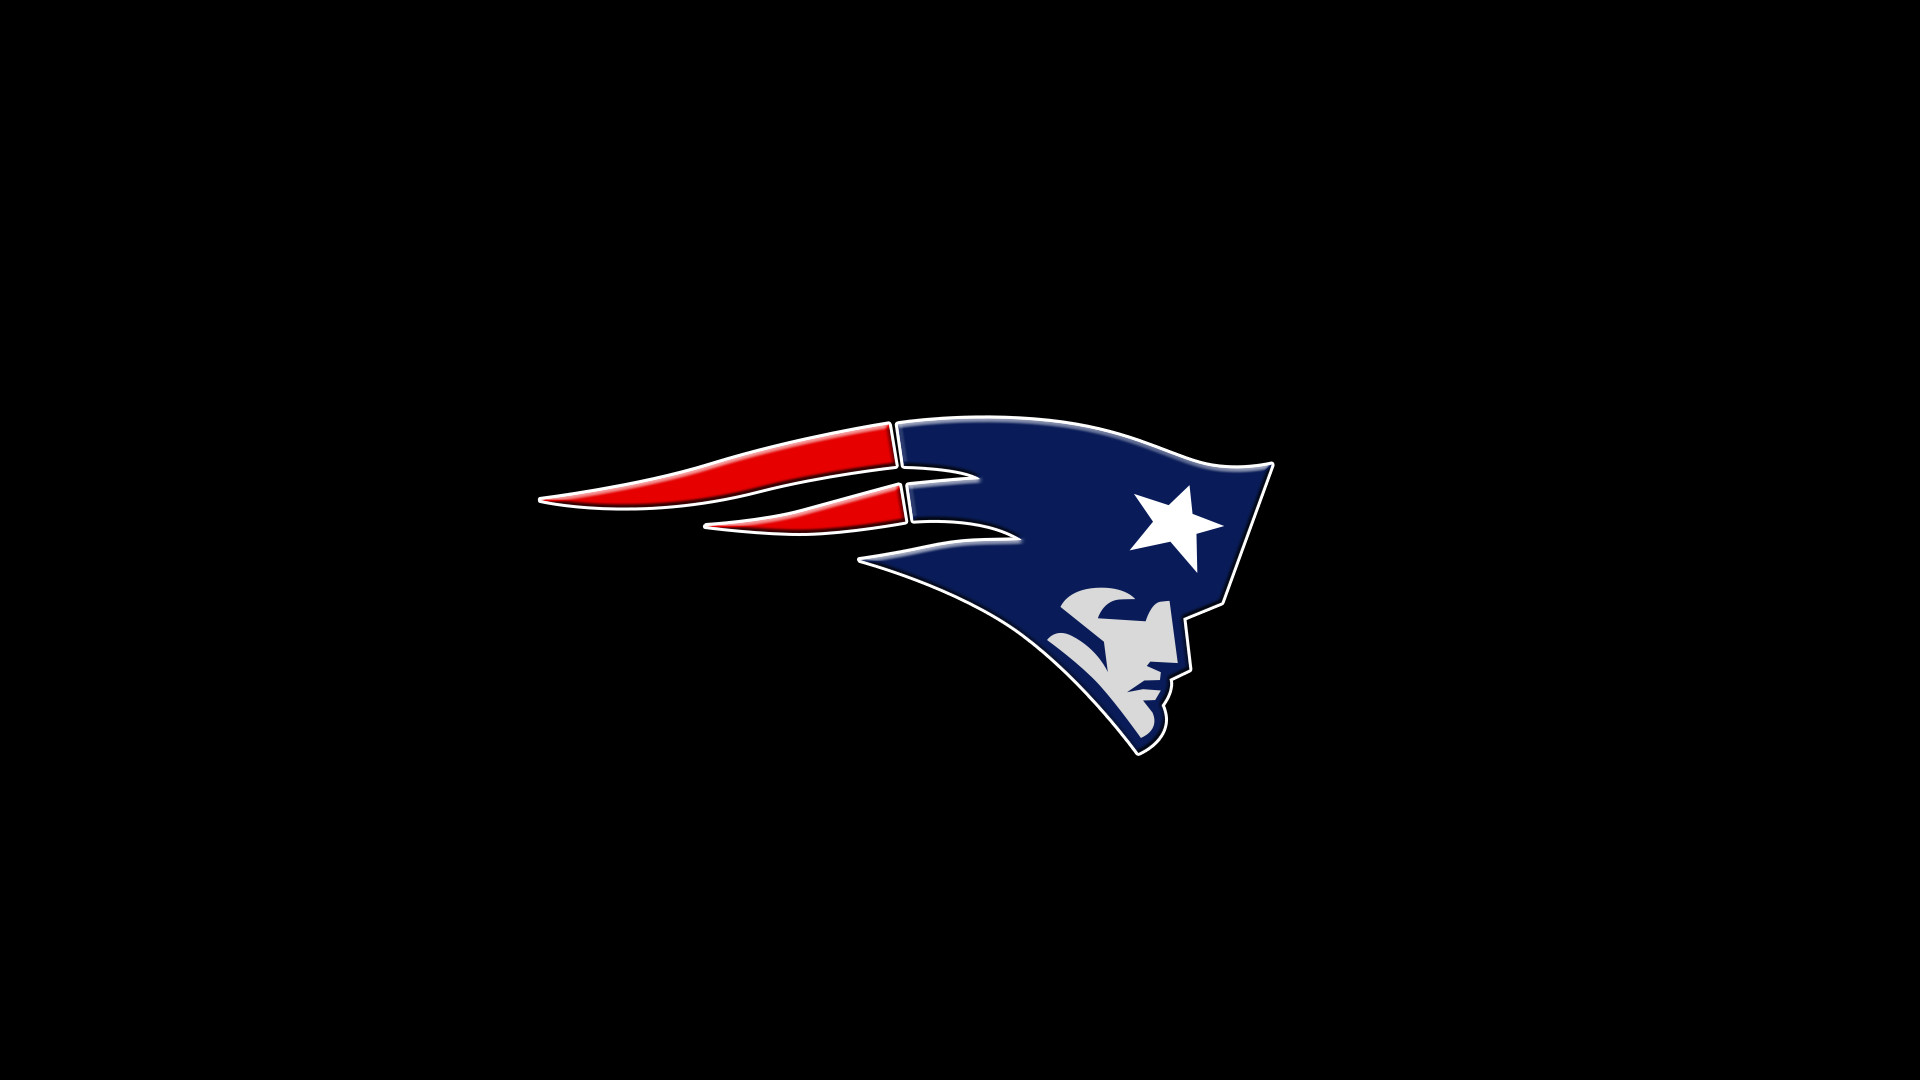 New england patriots wallpapers 1920x1080 new england patriots logo desktop wallpaper 55964 download new voltagebd Choice Image